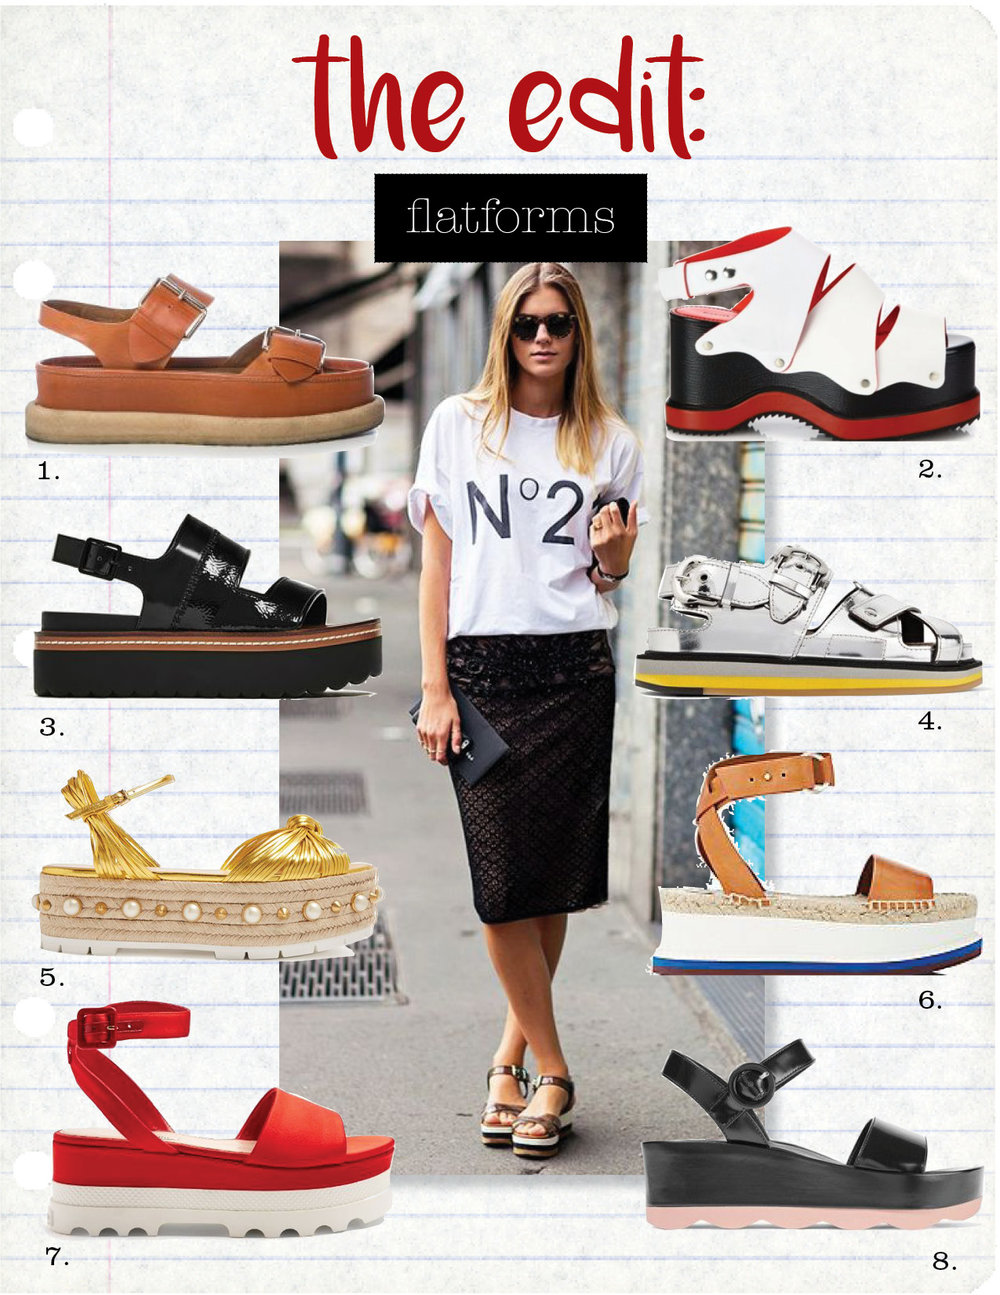 1. stella maccartney submerge faux-leather flatform sandals, $778,  matchesfashion.com  2. proenza schouler two-tone leather platform sandals, $1095,  saksfifthavenue.com  3. zara platform wedges, $69,  zara.com  4. maison margiela mirrored-leather sandals, $995,  net-a-porter.com  5. gucci pearl-embellished leather platform sandals, $906,  matchesfashion.com  6. stella mccartney espadrille platform sandals, $481,  matchesfashion.com  7. miu miu bi-colour satin flatform sandals, $500,  matchesfashion.com  8. prada glossed-leather platform sandals, $780,  net-a-porter.com